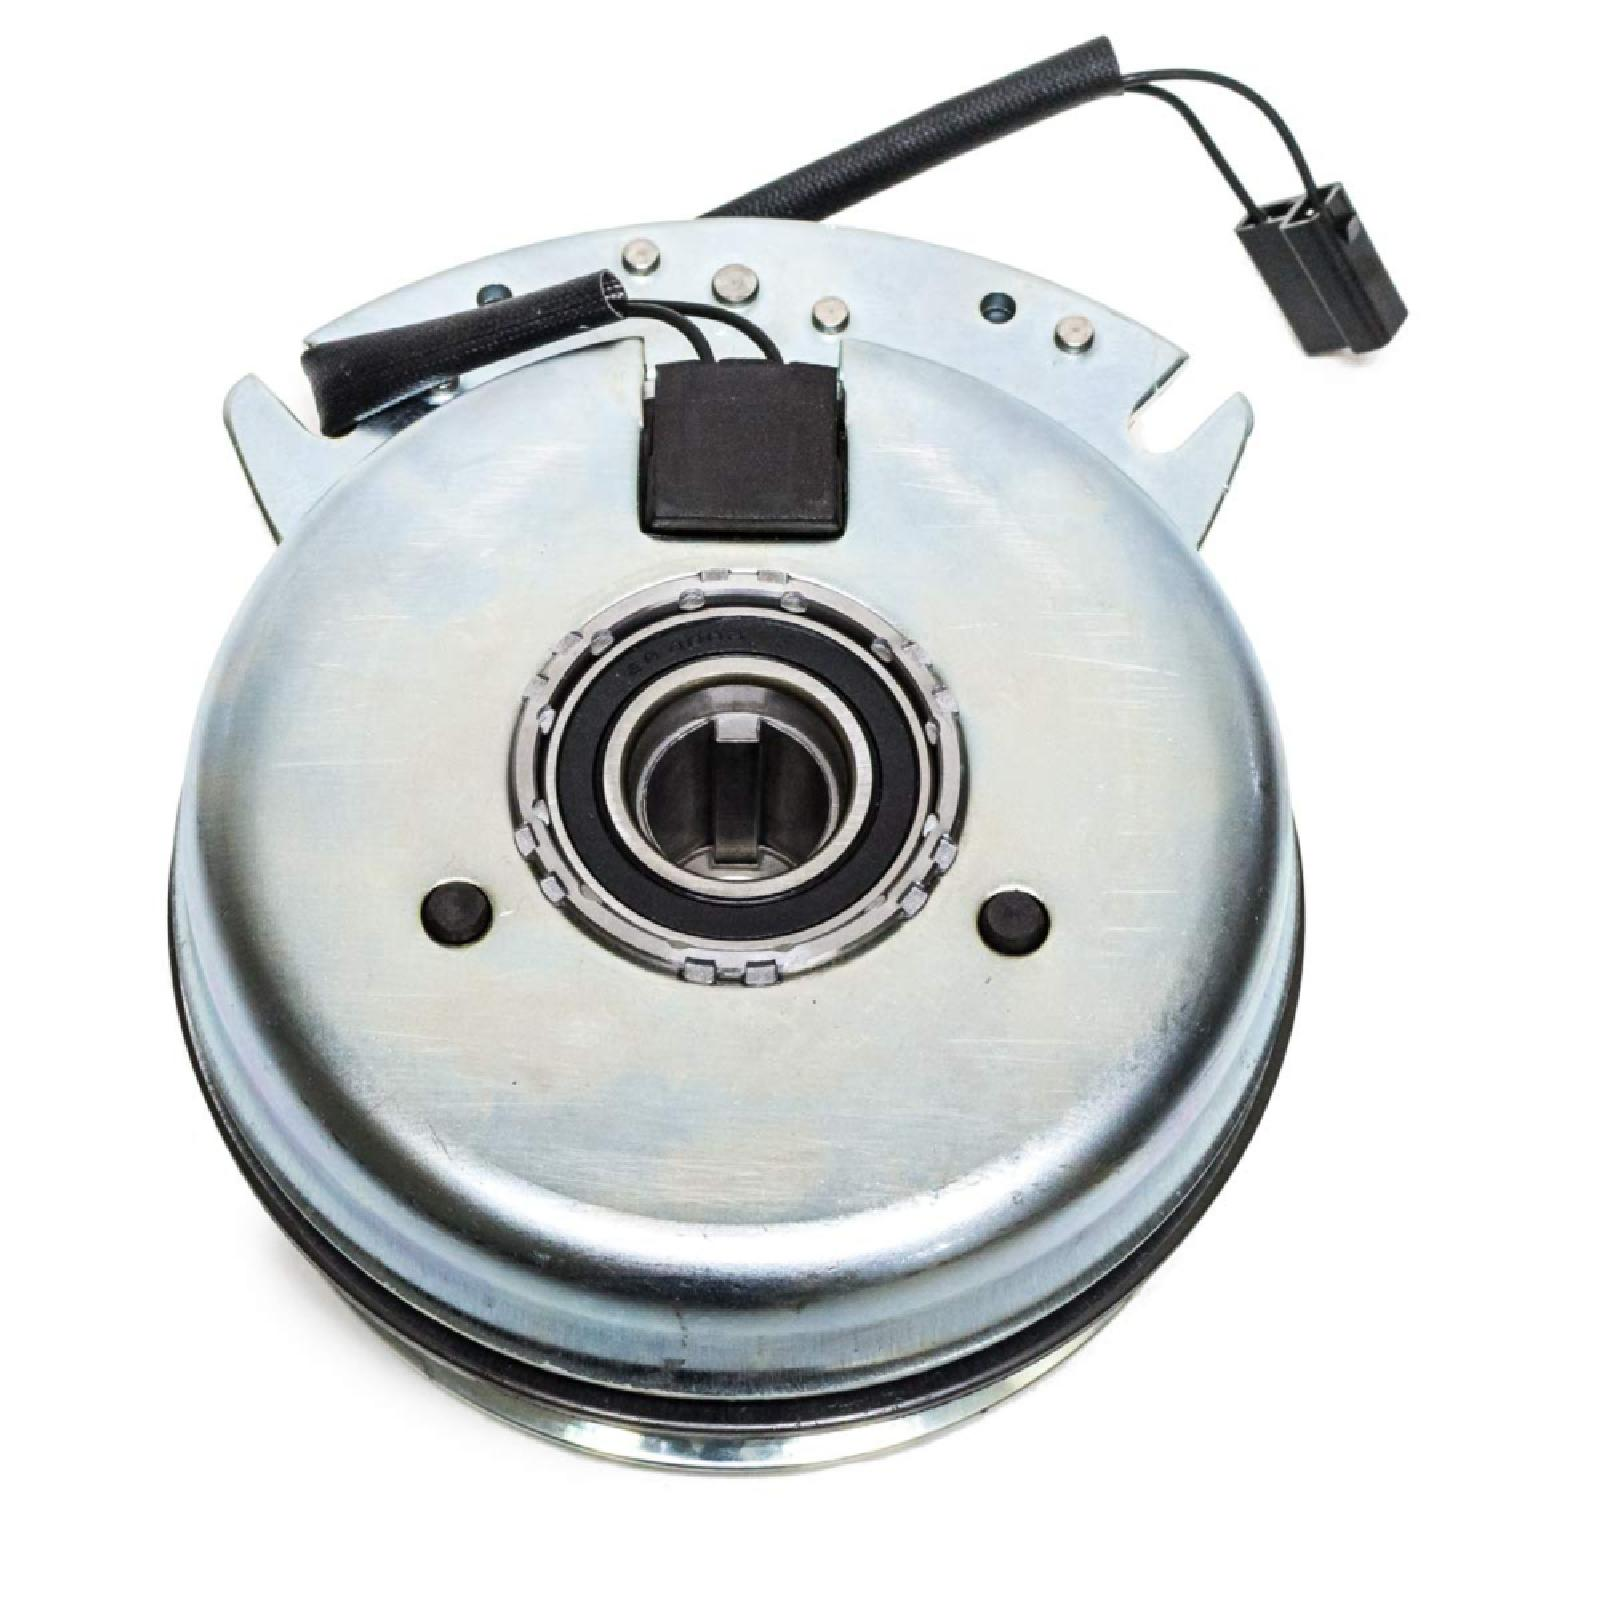 PTO clutch replaces Briggs & Stratton 7601023MA 690461MA